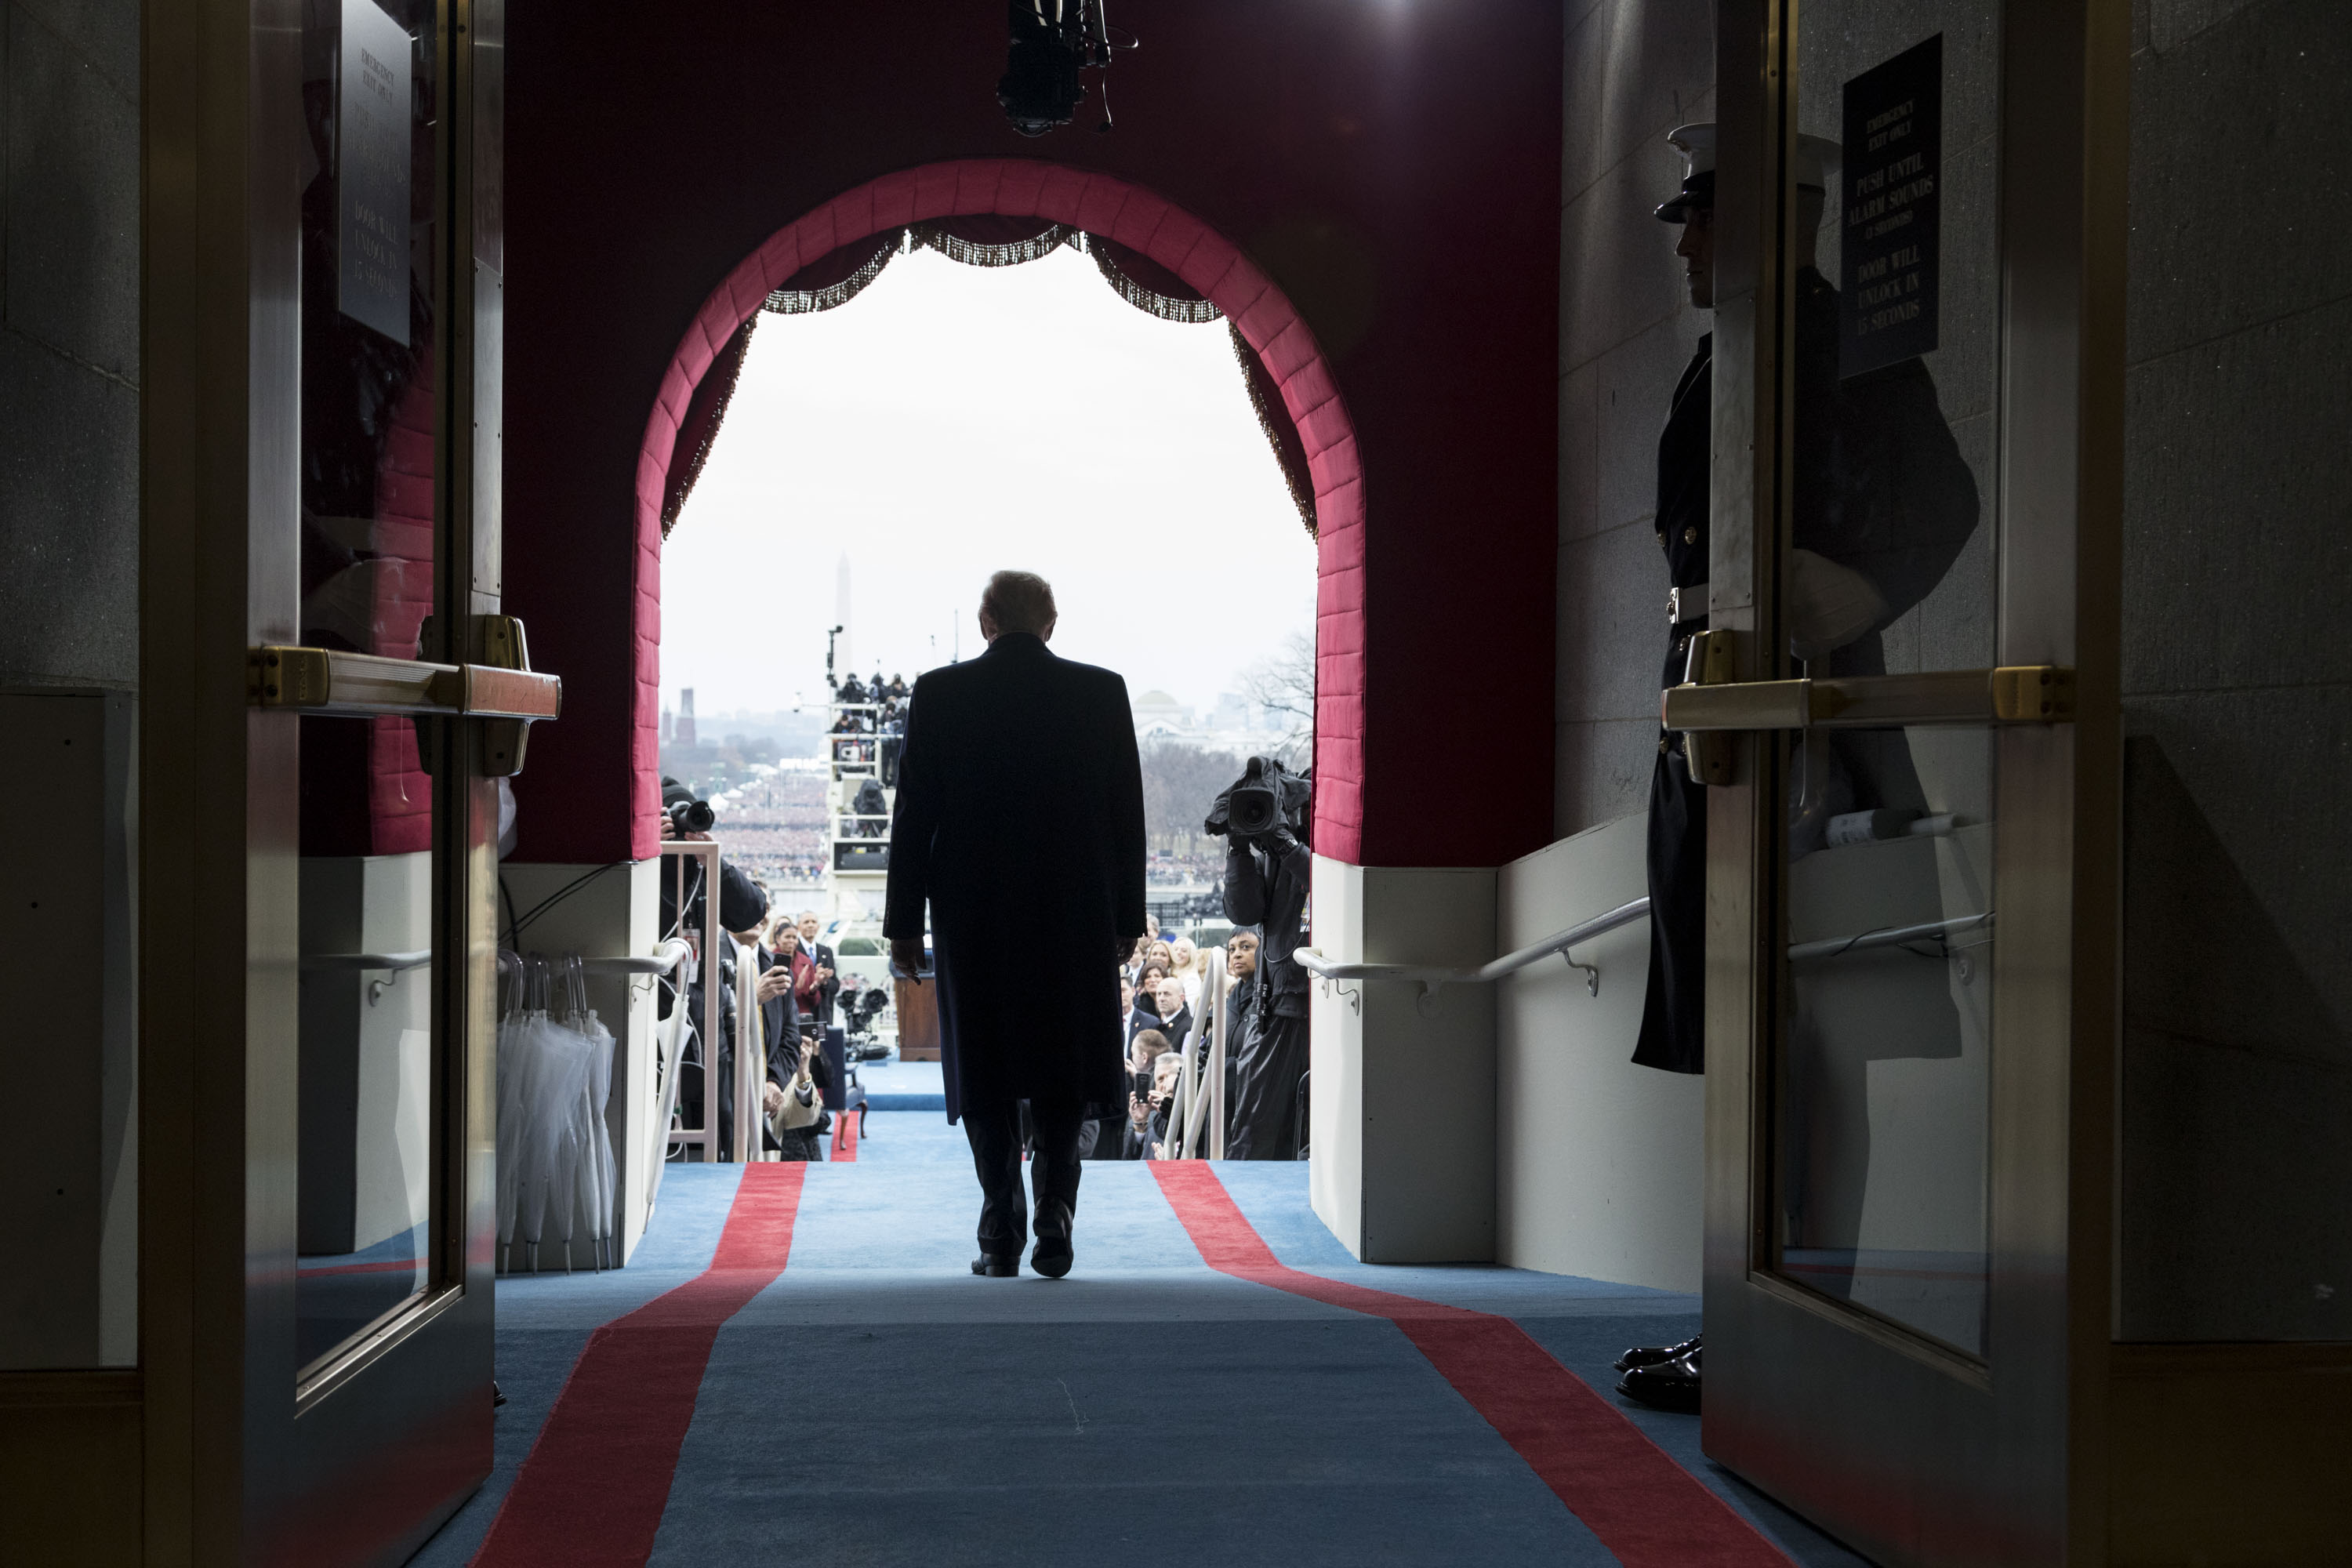 President-elect Donald Trump walks to take his seat for the inaugural swearing-in ceremony at the U.S. Capitol in Washington, D.C., Friday, January 20, 2017. (Official White House Photo by Shealah Craighead)